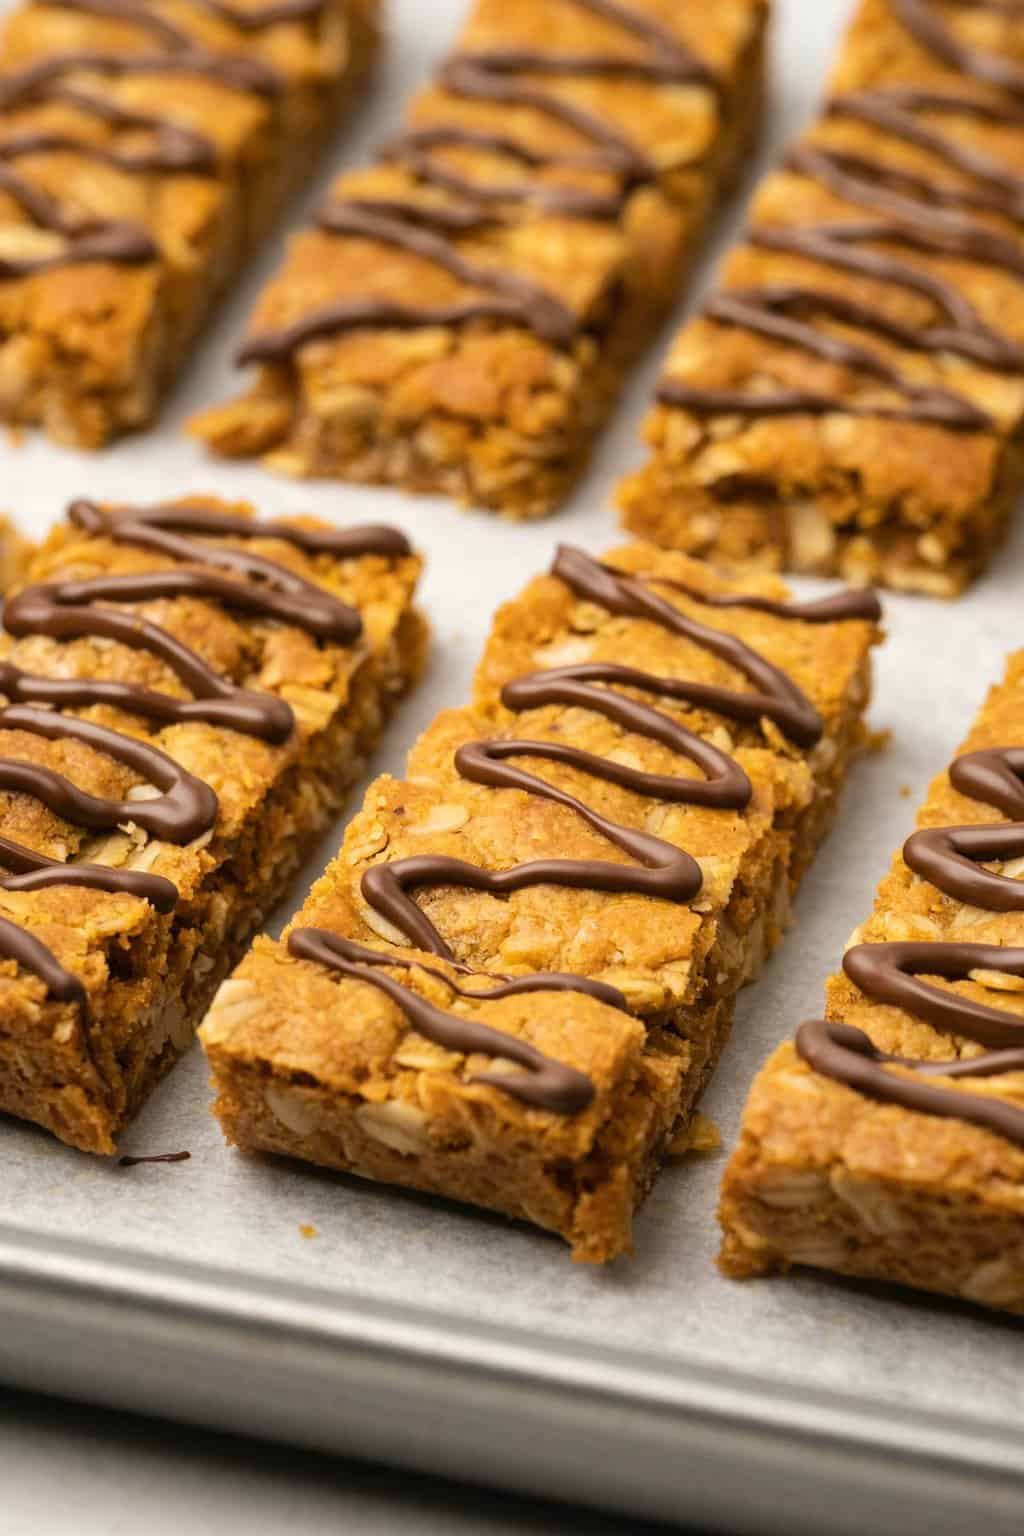 Oatmeal bars drizzled with chocolate on a parchment lined baking tray.